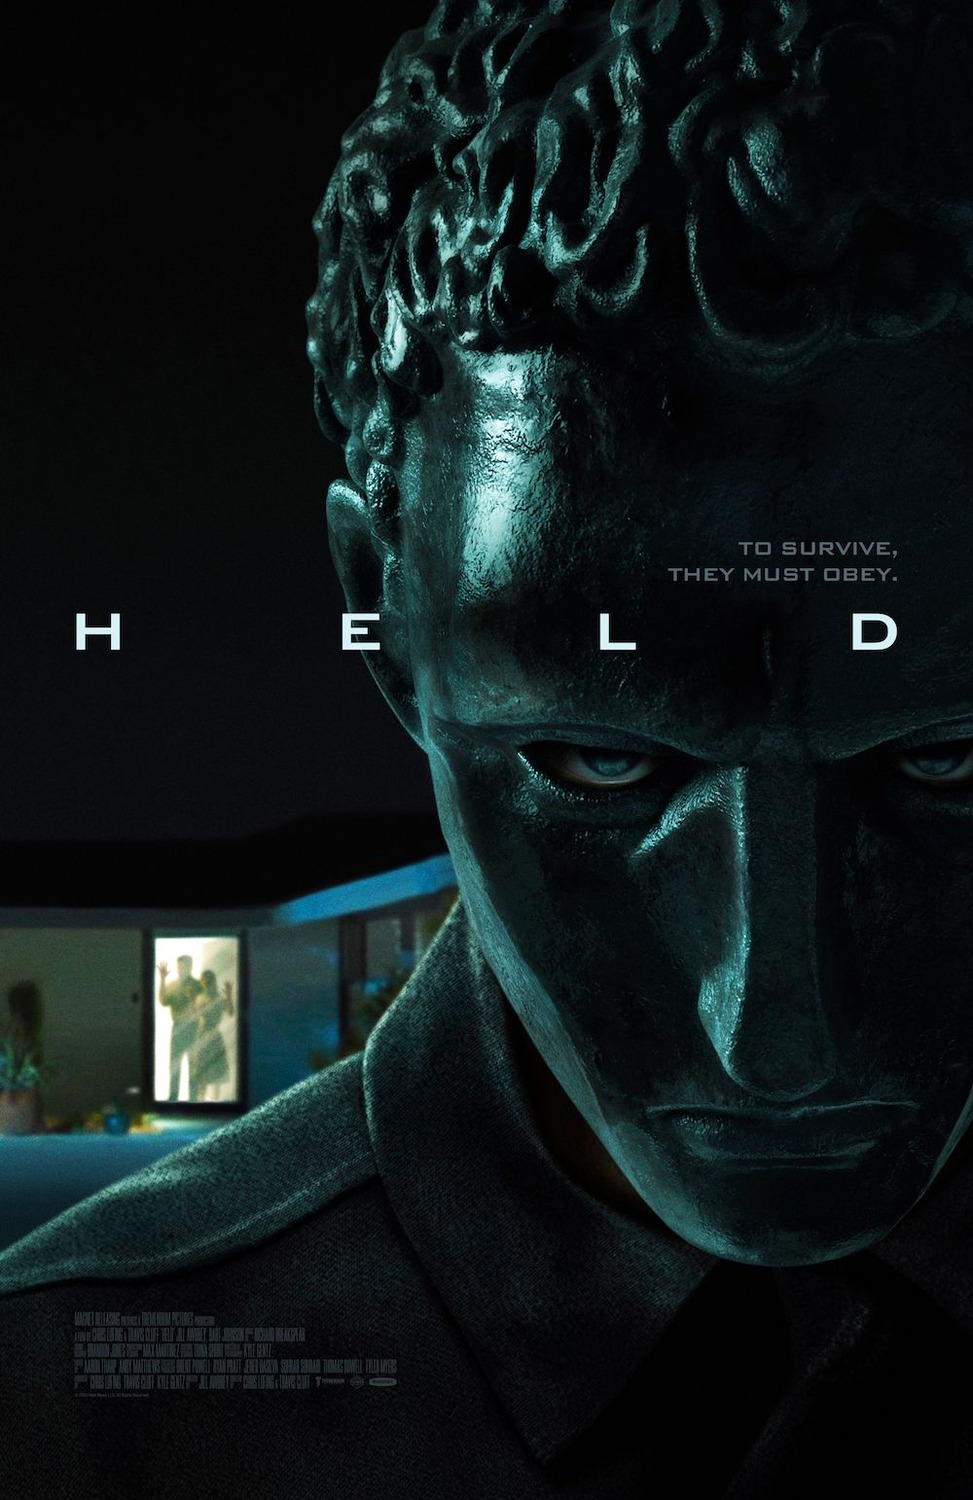 Download Filme Held Torrent 2021 Qualidade Hd